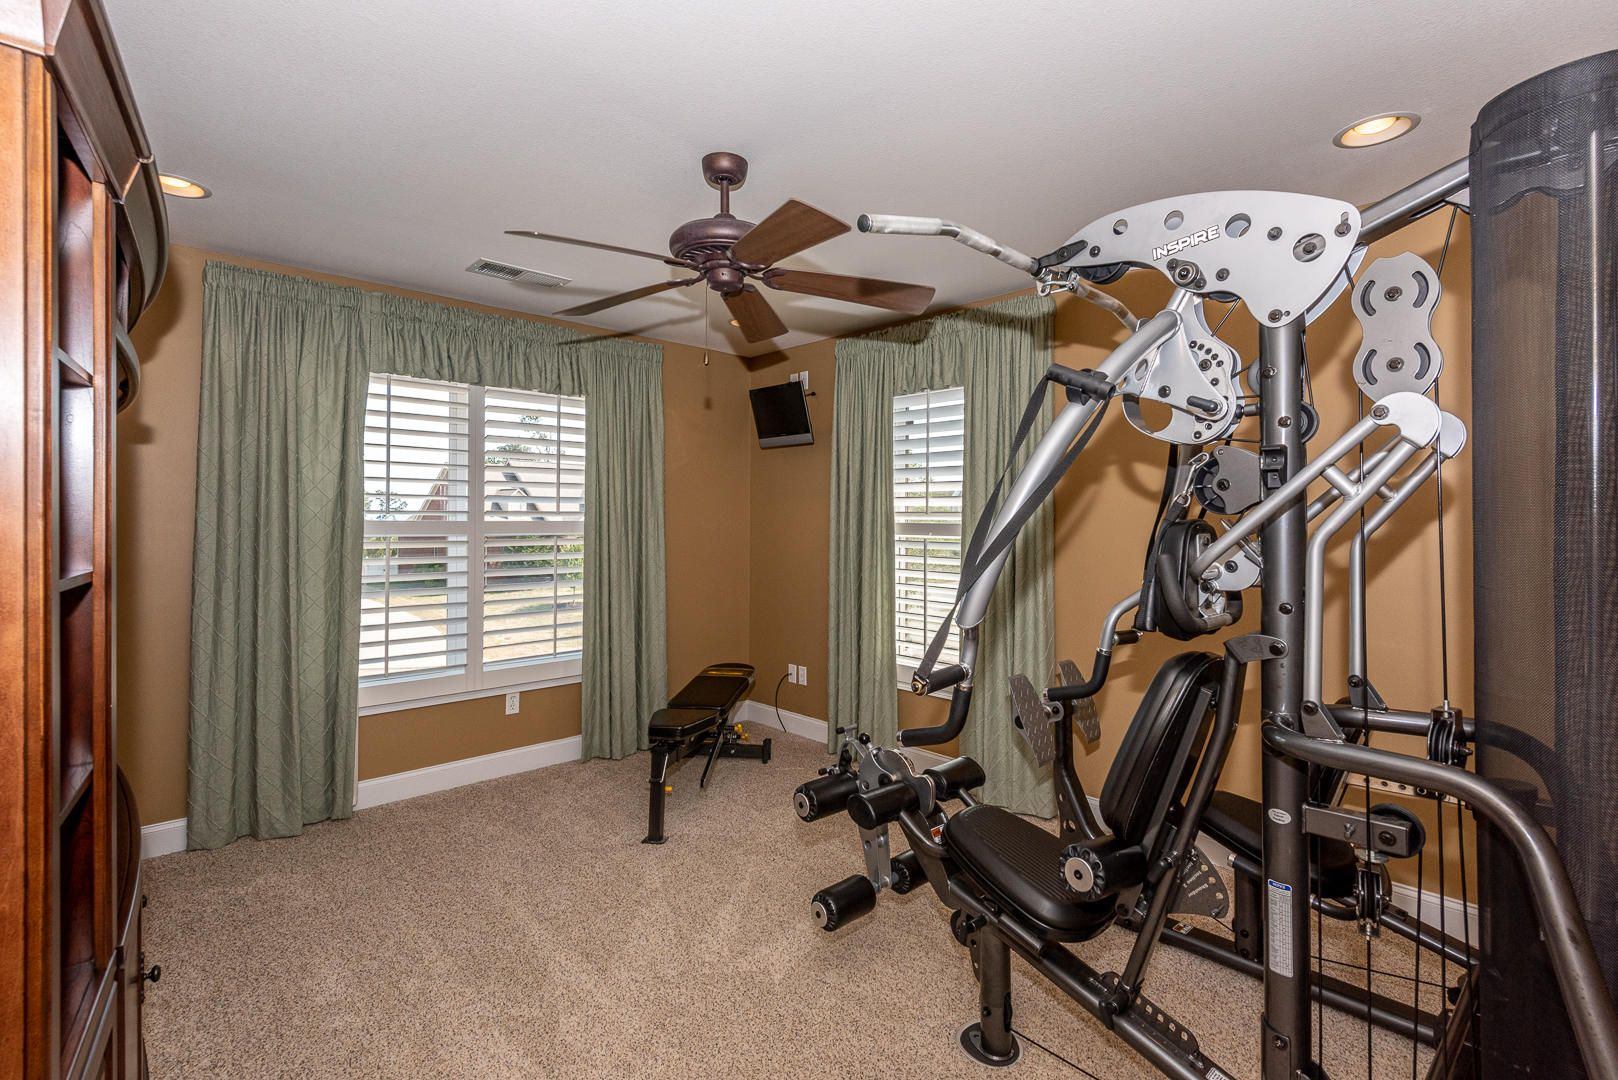 4TH BEDROOM OR WORKOUT ROOM